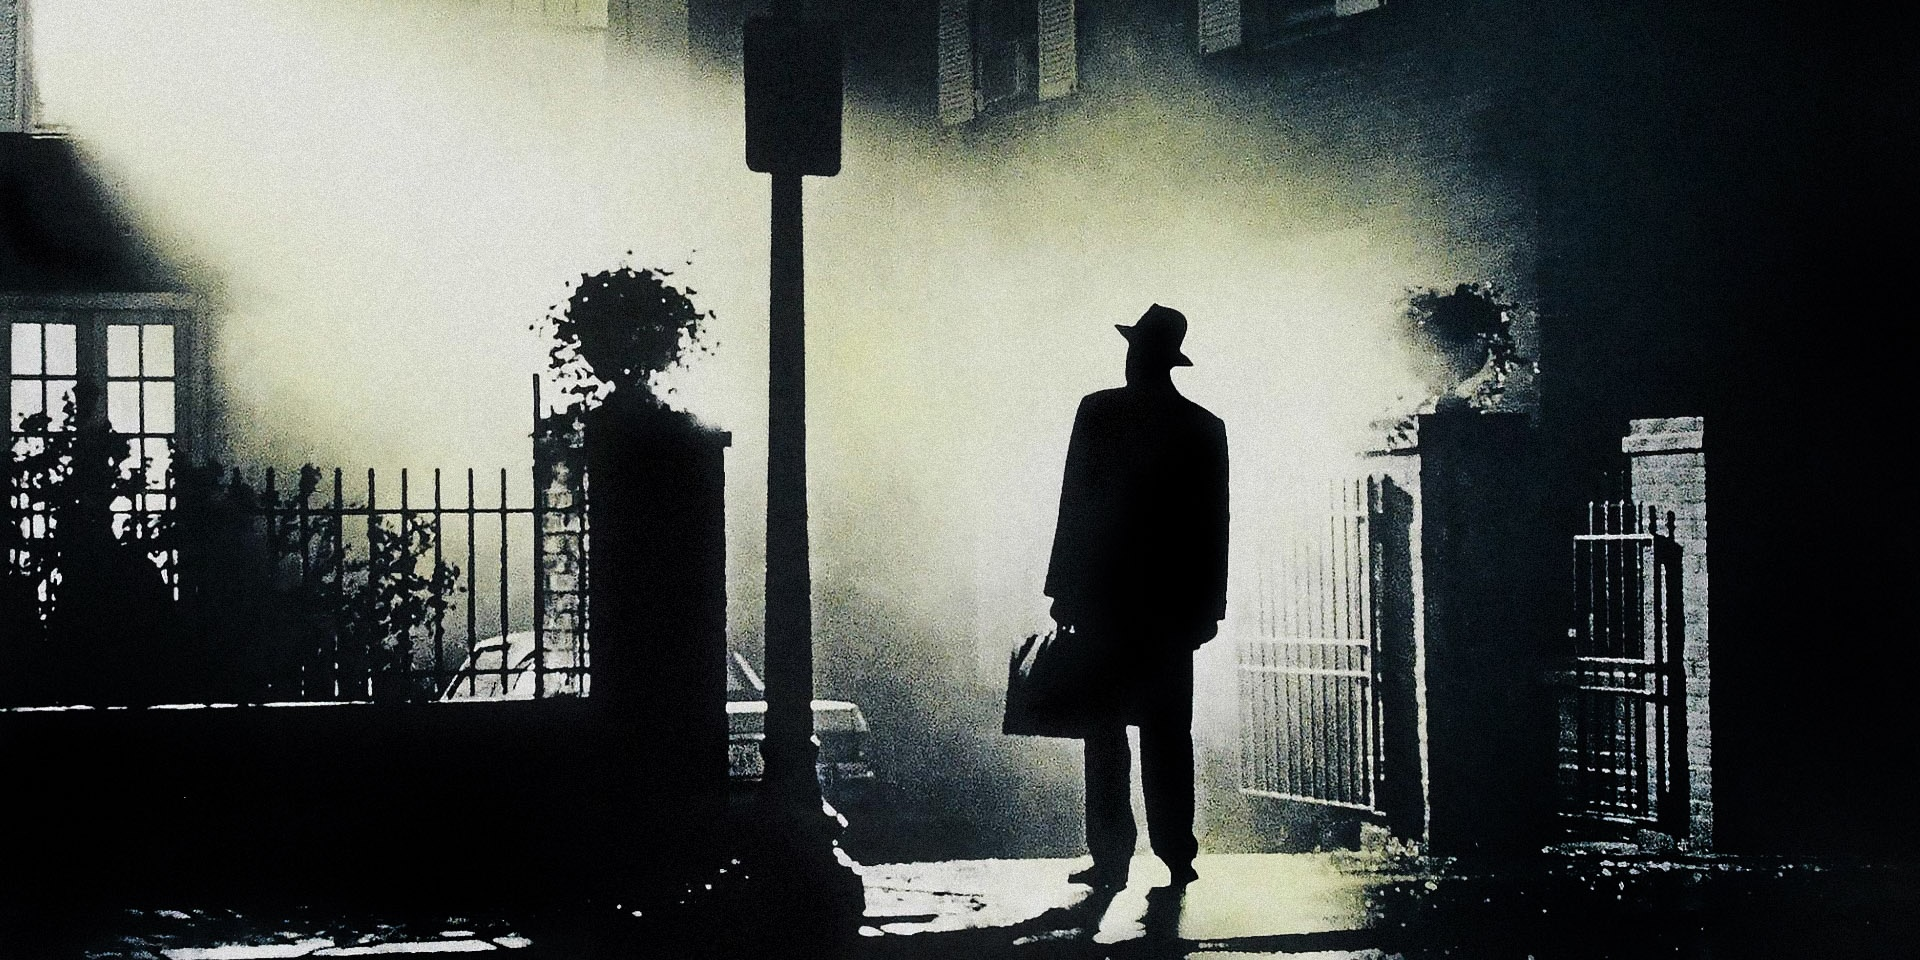 LISTEN: The frightening rejected score for The Exorcist